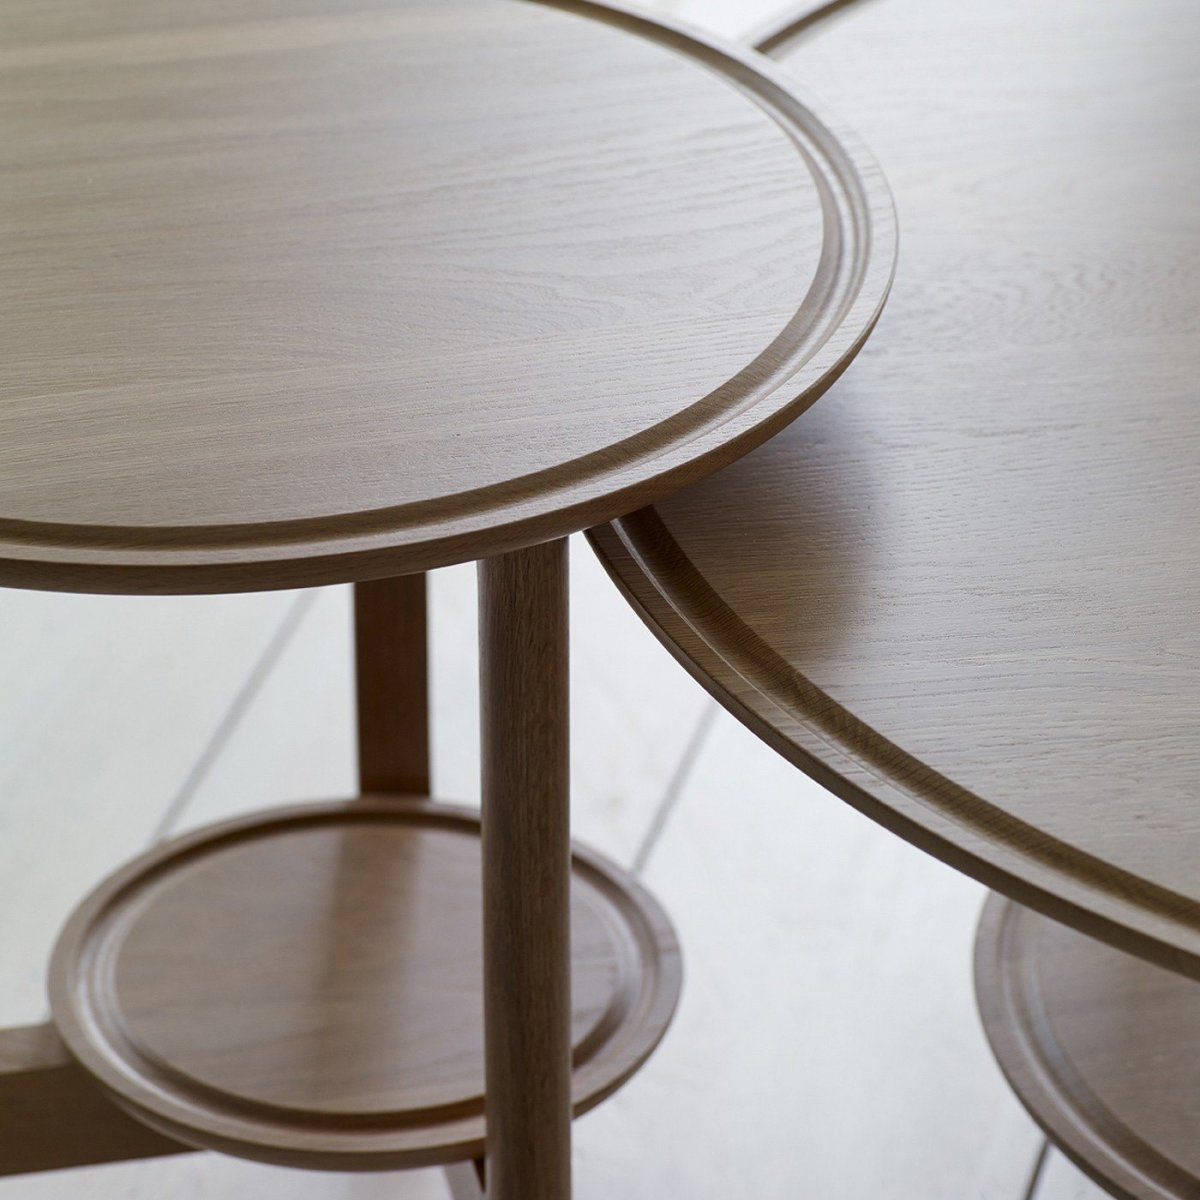 Svelto tables, detail.